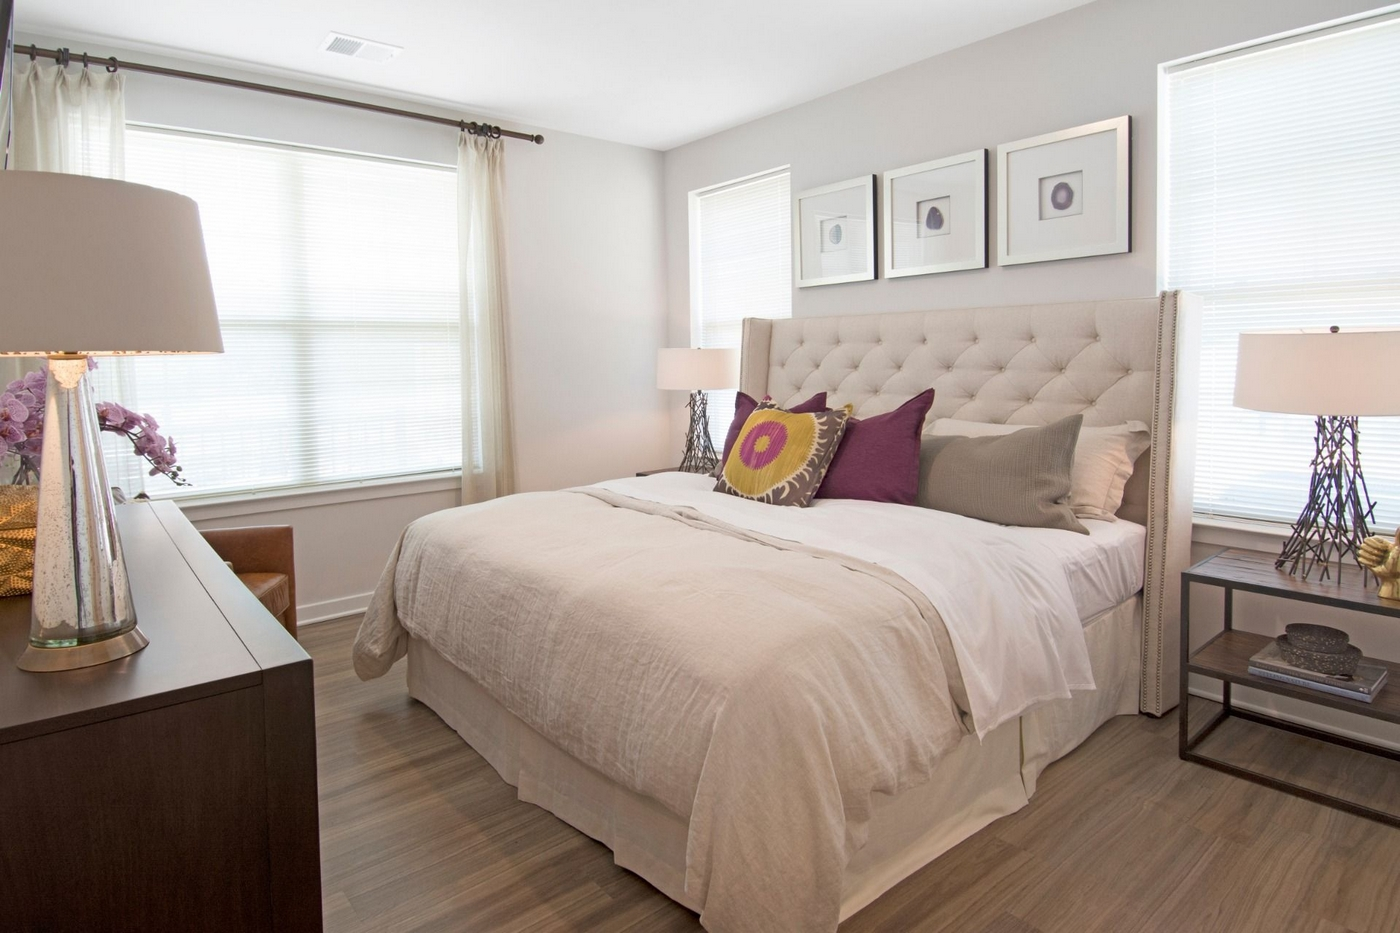 Spacious bedroom with King size bed and wood panel floors